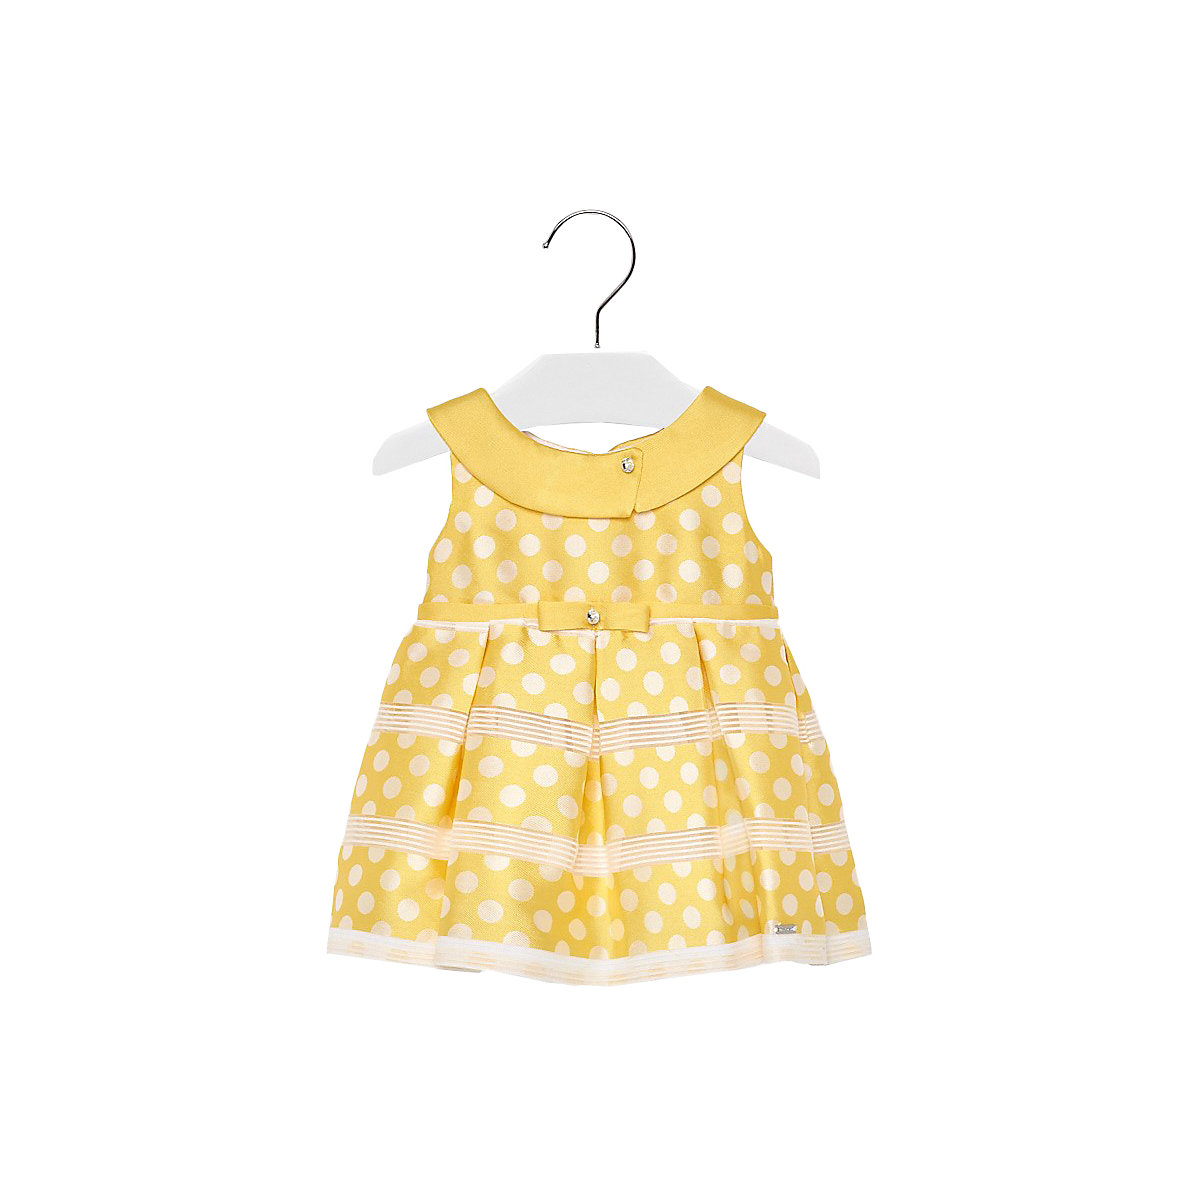 MAYORAL Dresses 10688622 Girl Children fitted pleated skirt Yellow Polyester Casual Print Knee-Length Sleeveless Sleeve girl print drawstring top